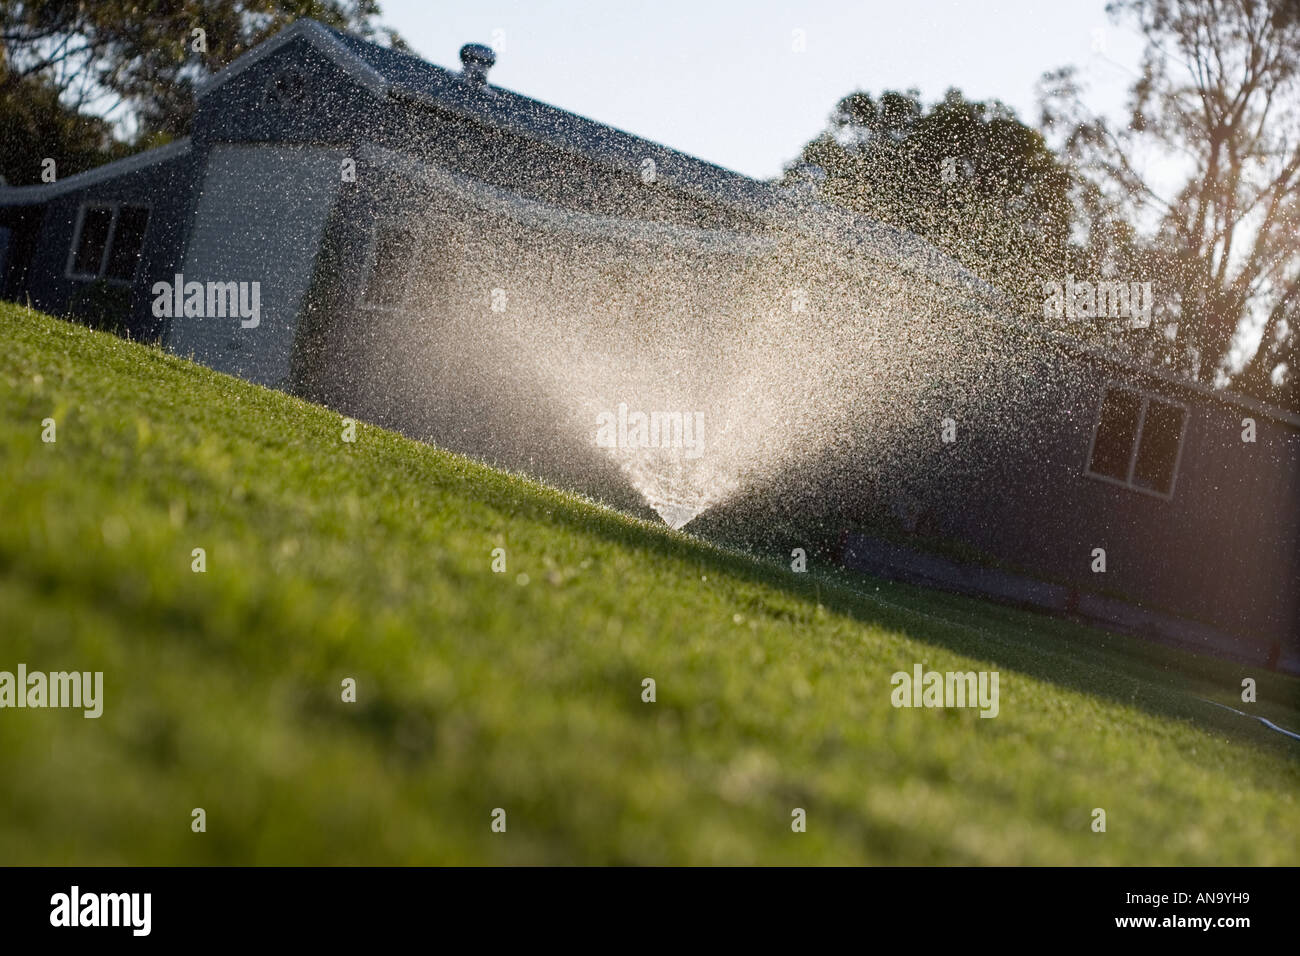 Sprinkler on green lawn, barn and sky in background. Shot low and at an angle very summer, location shot Victoria Australia - Stock Image